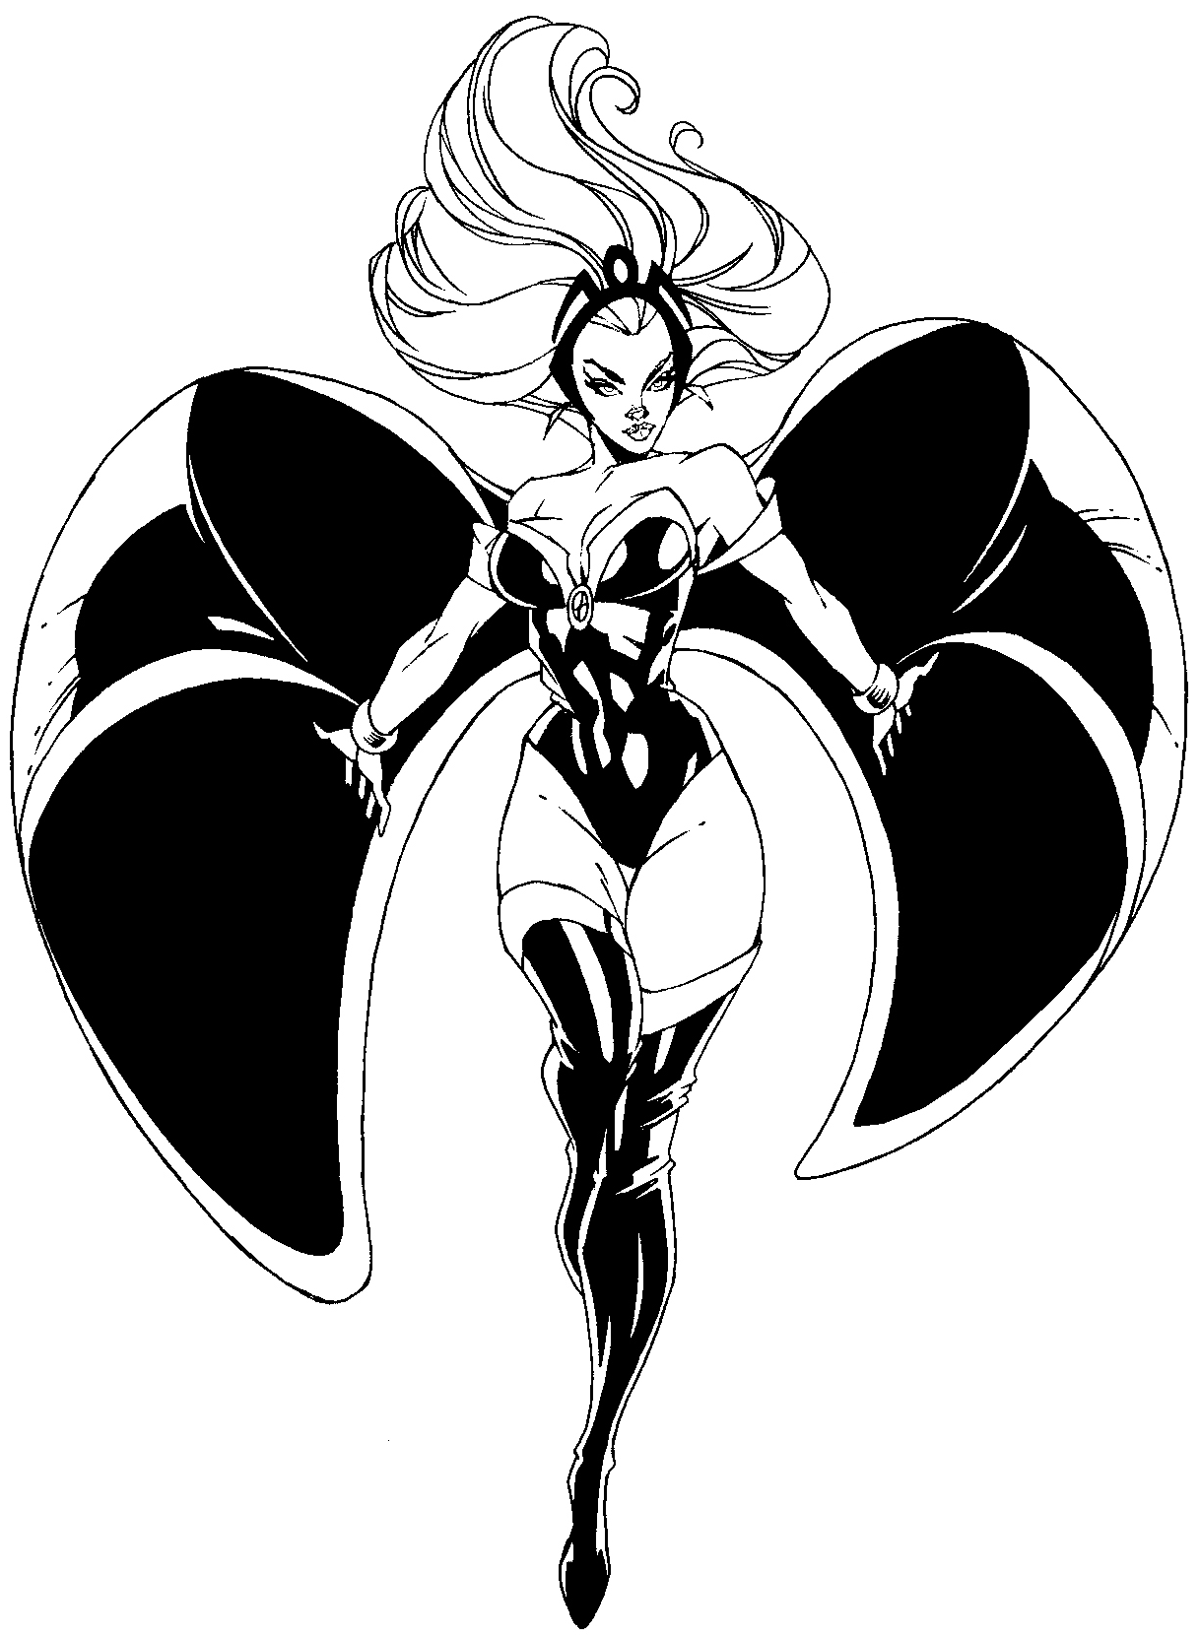 How to draw Storm from Marvel's X-Men Superhero Team with easy step by step drawing tutorial